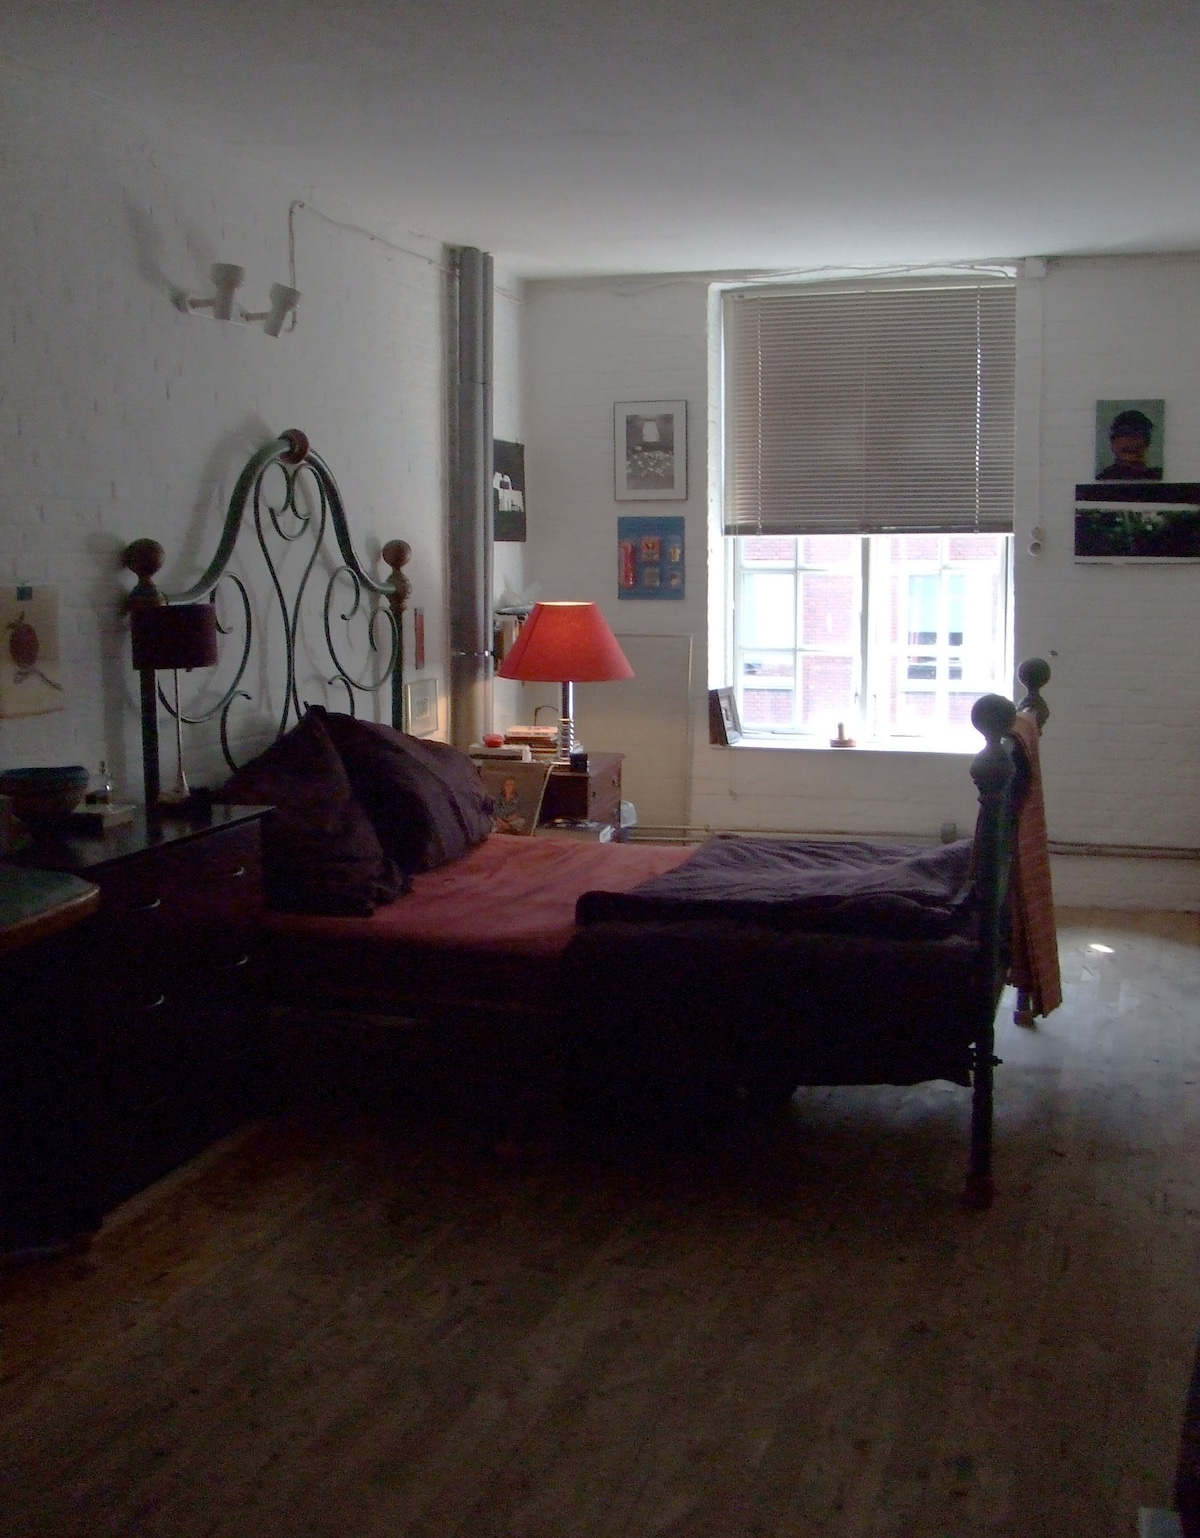 A view into the spacious bedroom, an oasis of calm, with an old wrought-iron double bed to dream on!